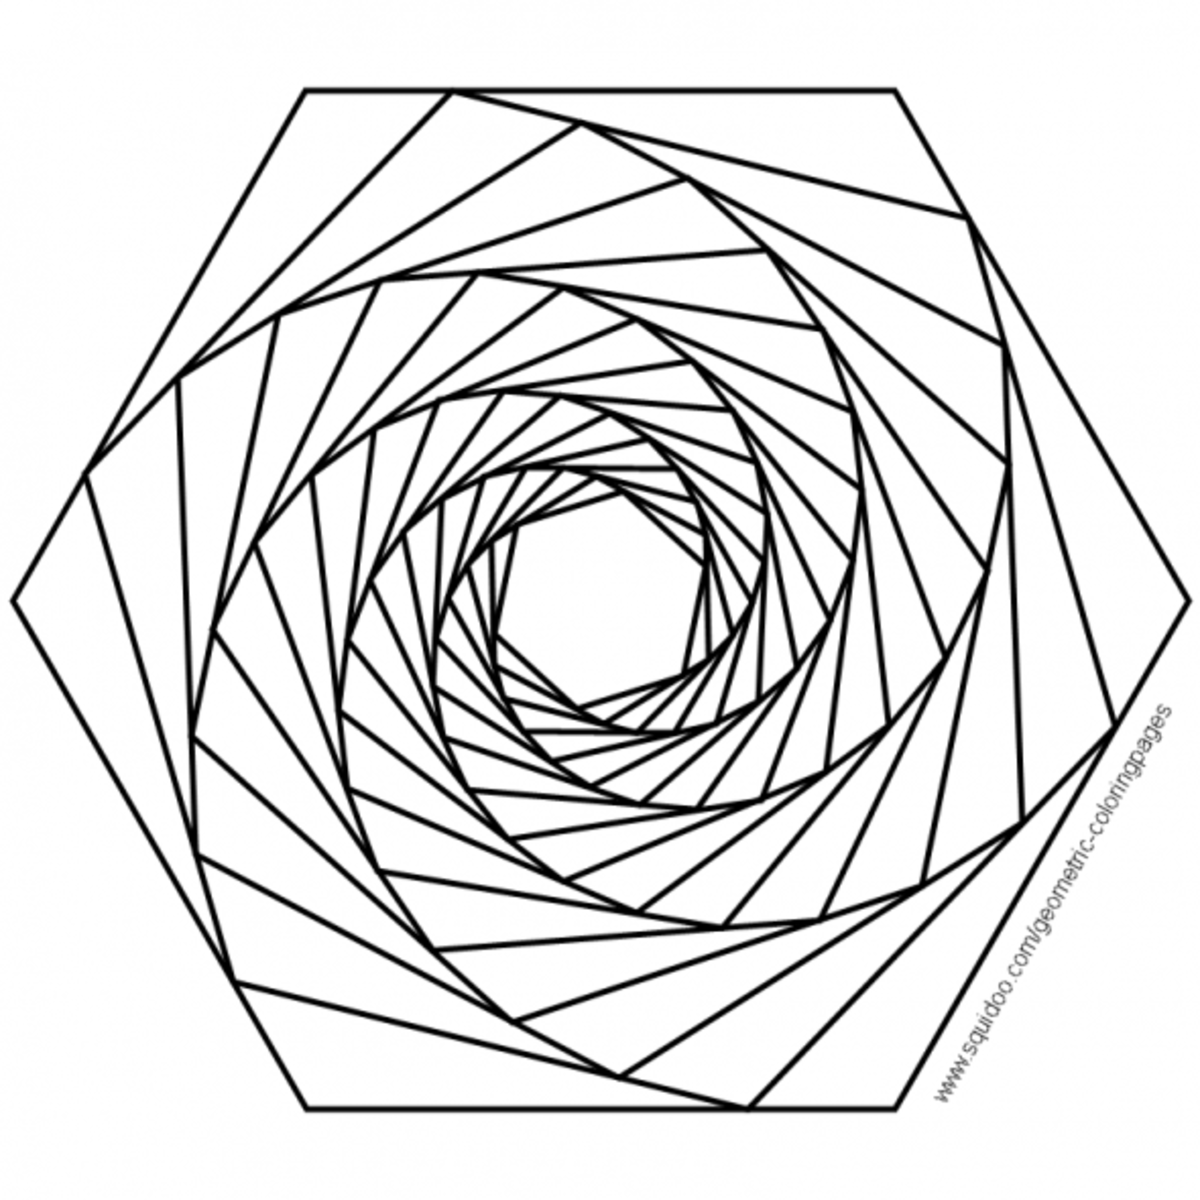 Geometric coloring pages hubpages for Geometric coloring pages online